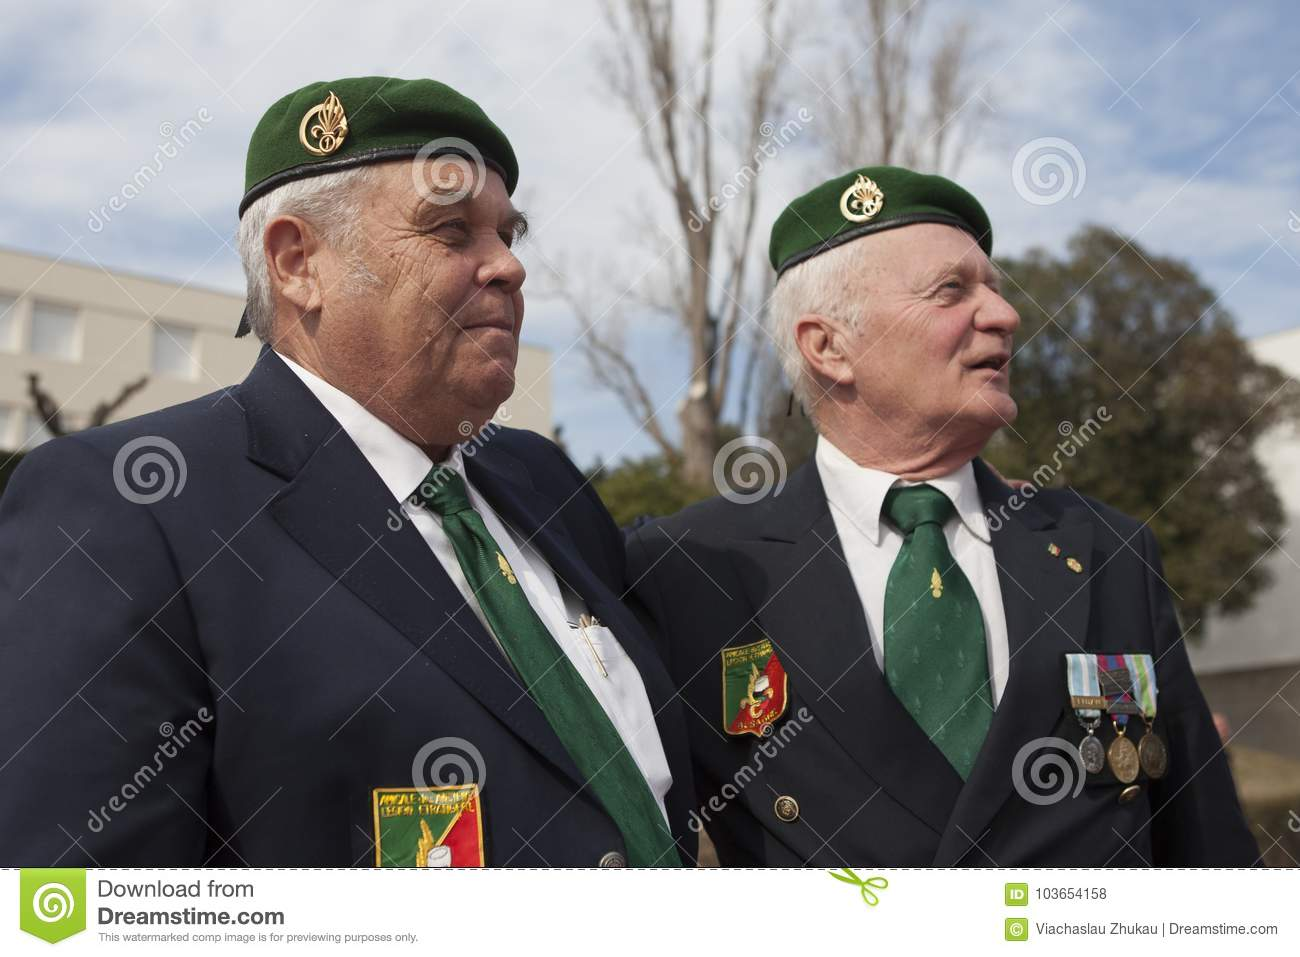 Aubagne France May 11 2012 Portrait Of Veterans Of The French